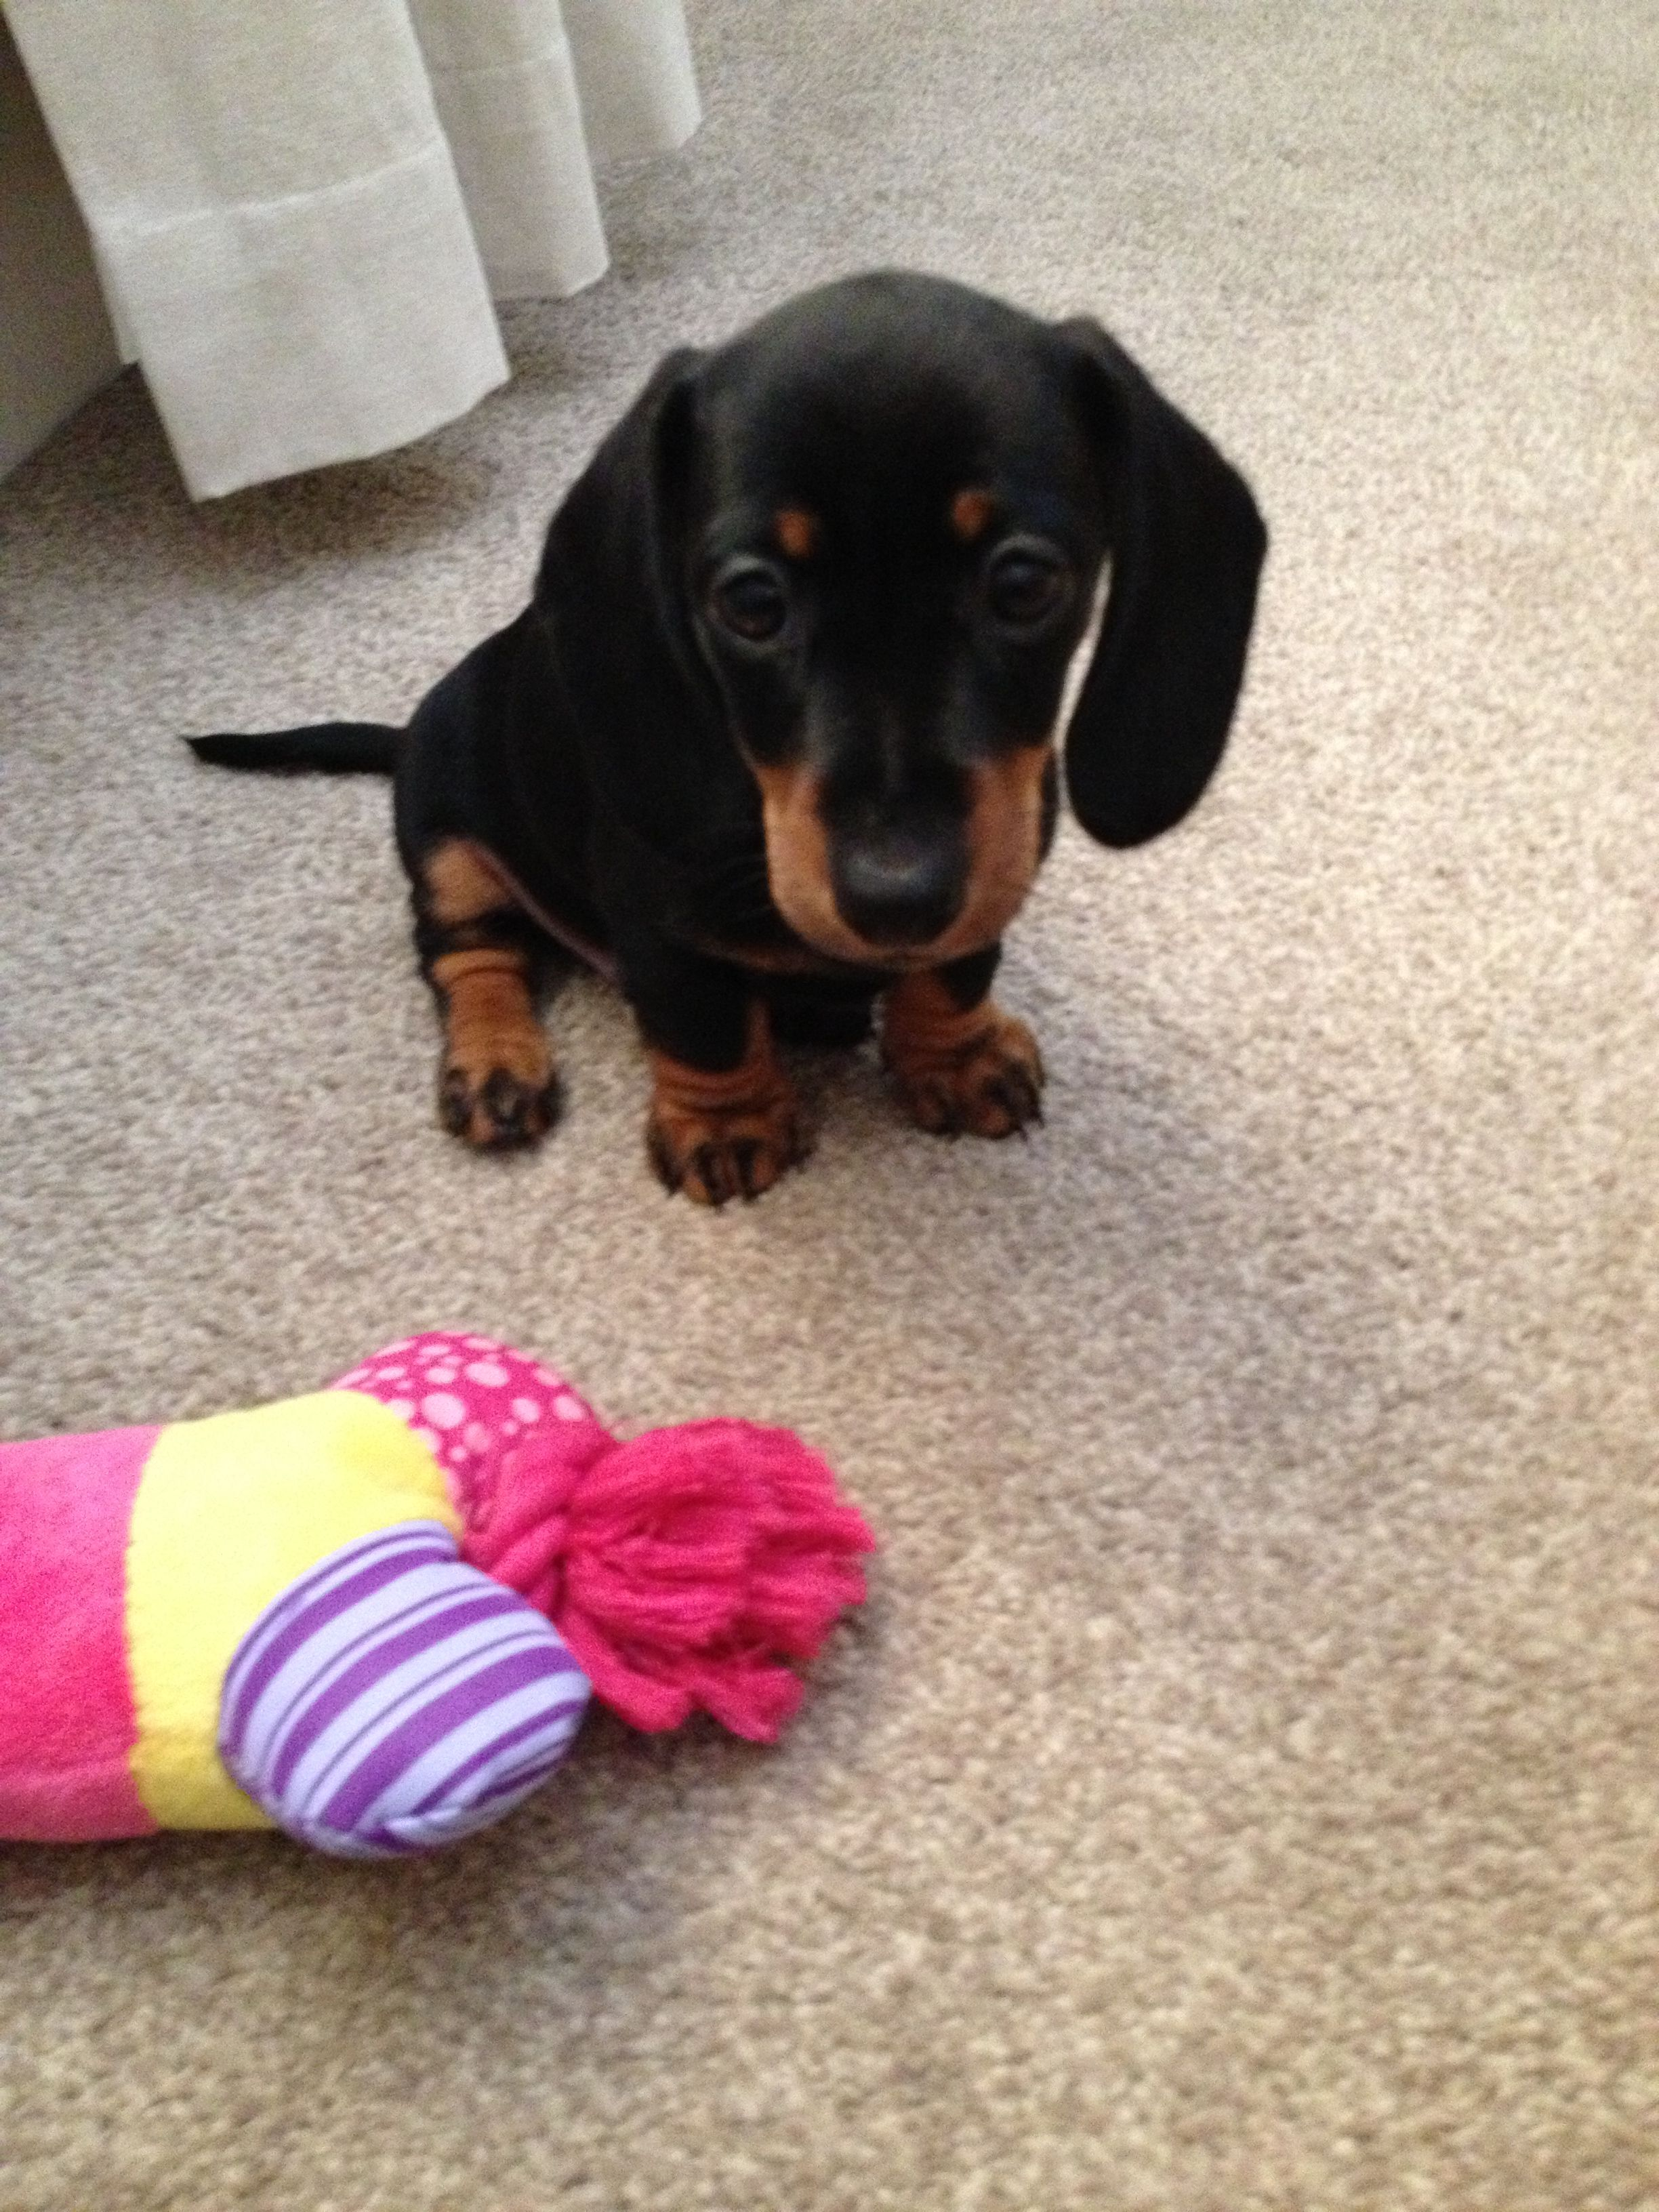 Our 8 Week Old Dachshund Puppy Hank Not Mine But How Adorable